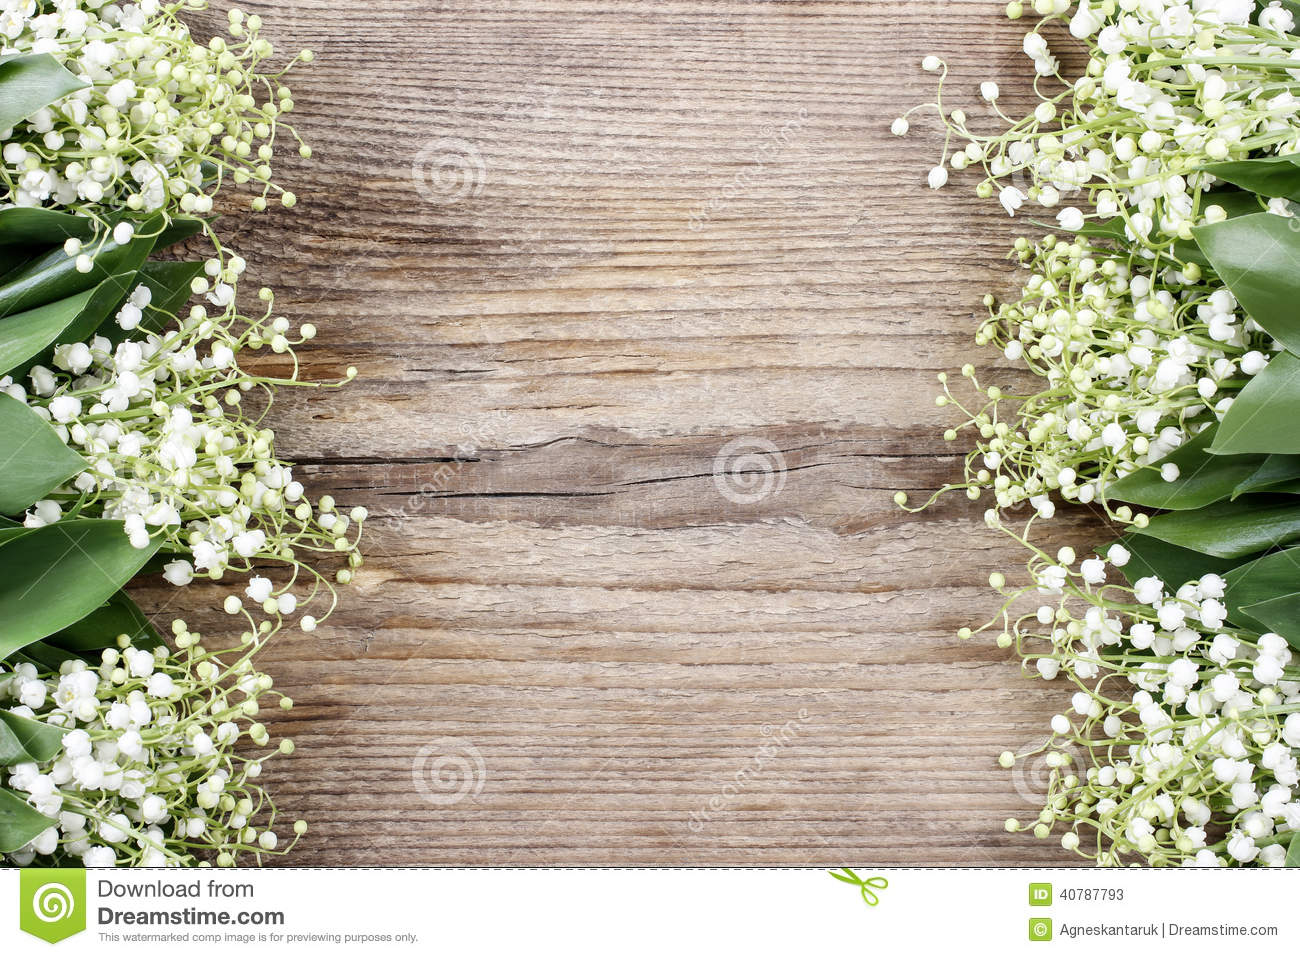 Lily of the valley flowers on wooden background stock image image royalty free stock photo izmirmasajfo Choice Image